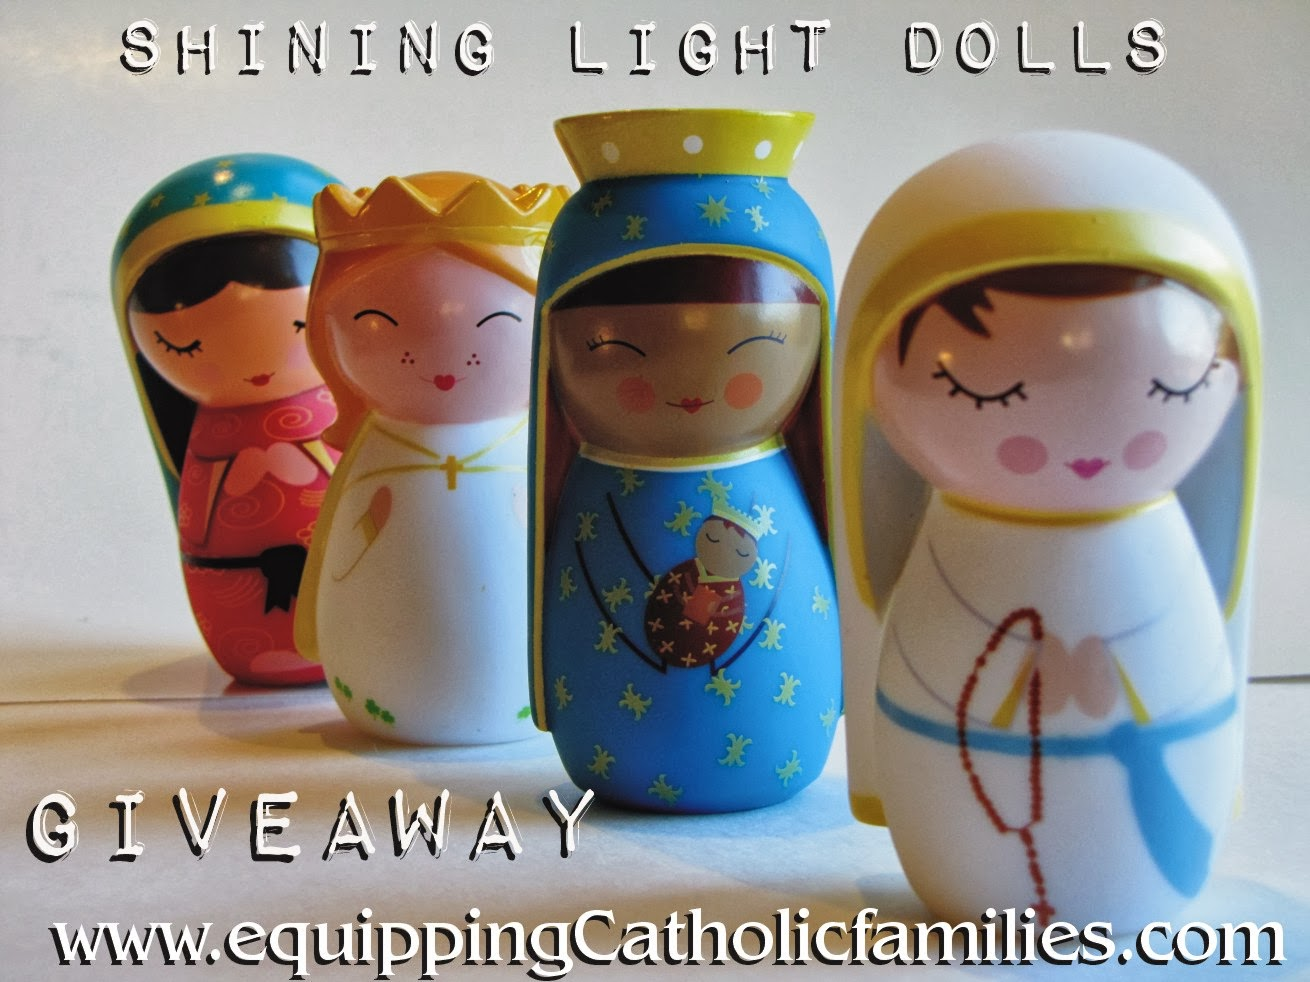 Shining Light Dolls GIVEAWAY!